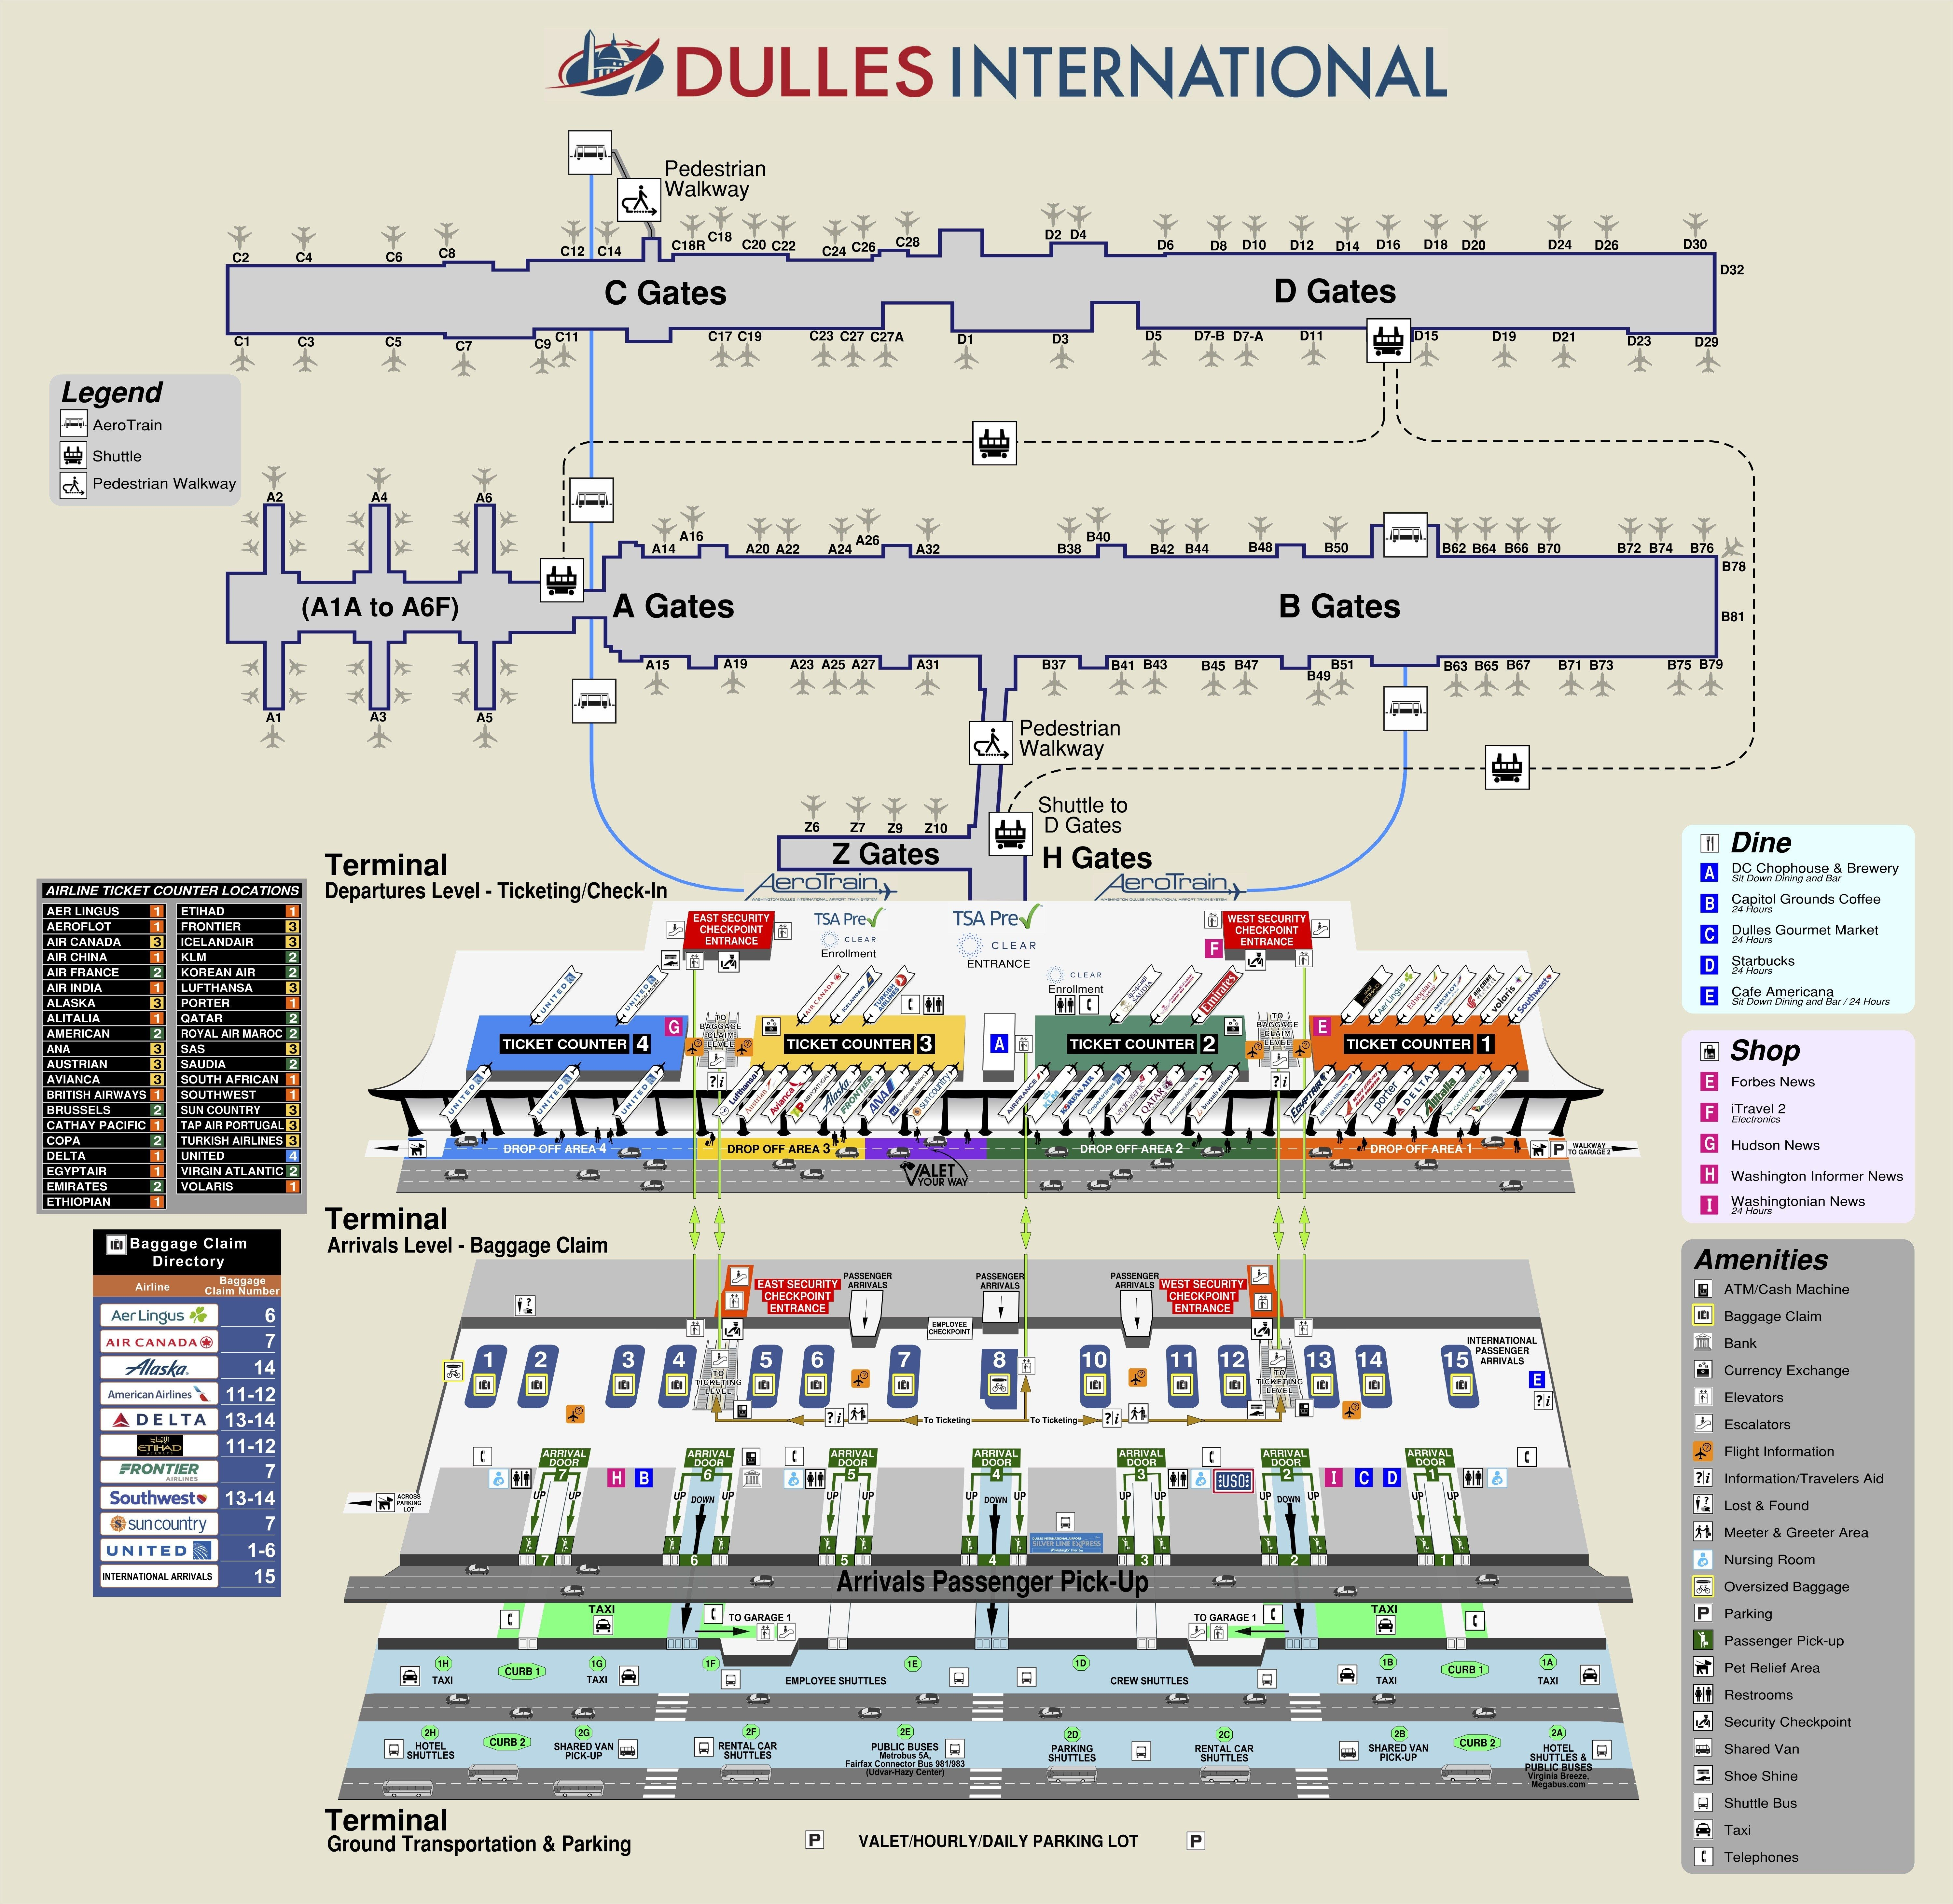 a656063bbd0d40a1e4160266219347fe - How To Get From Washington Dulles To Downtown Dc